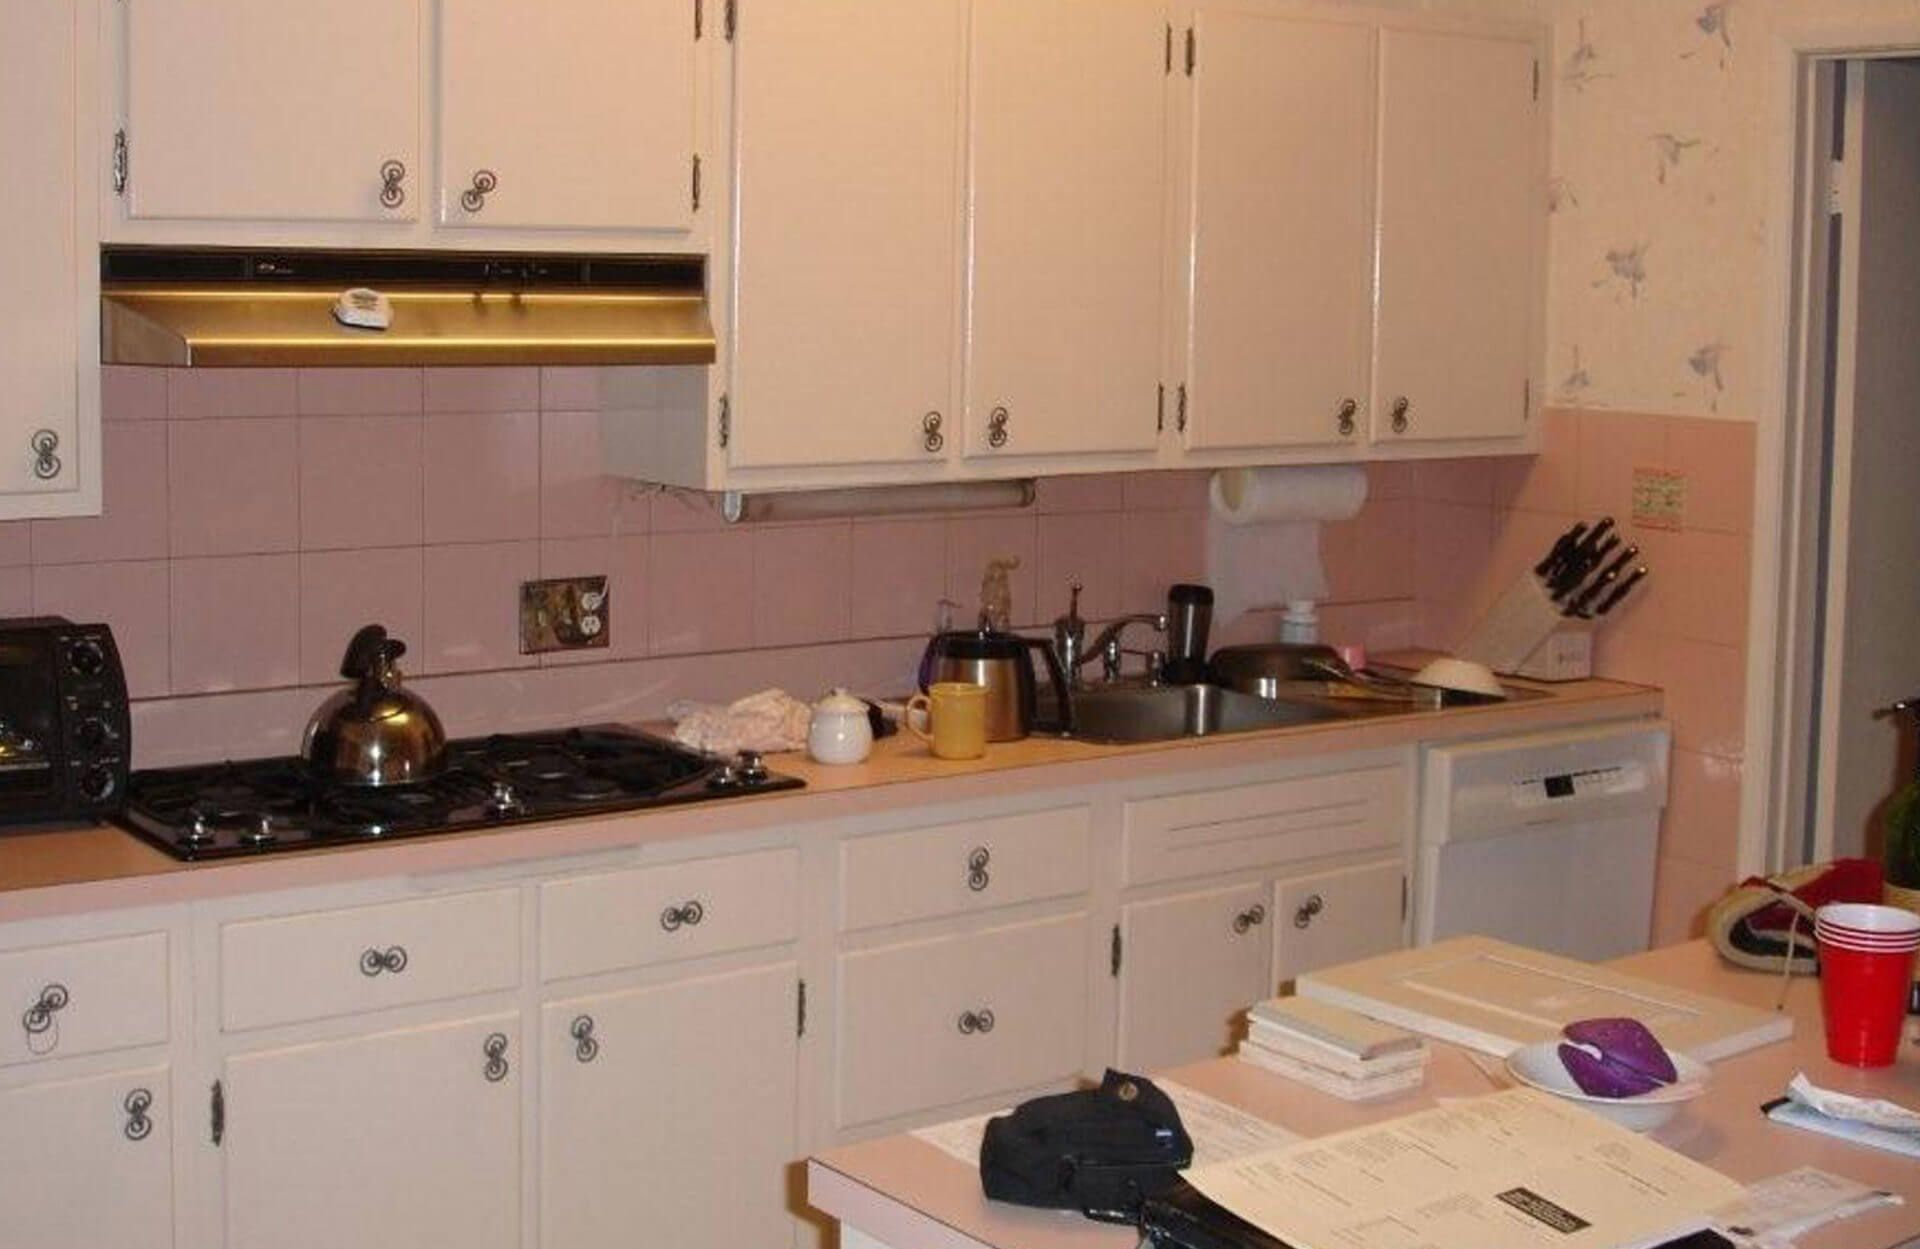 Before And After Refacing Gallery In 2020 Kitchen Refacing Kitchen Cabinets Before After Kitchen